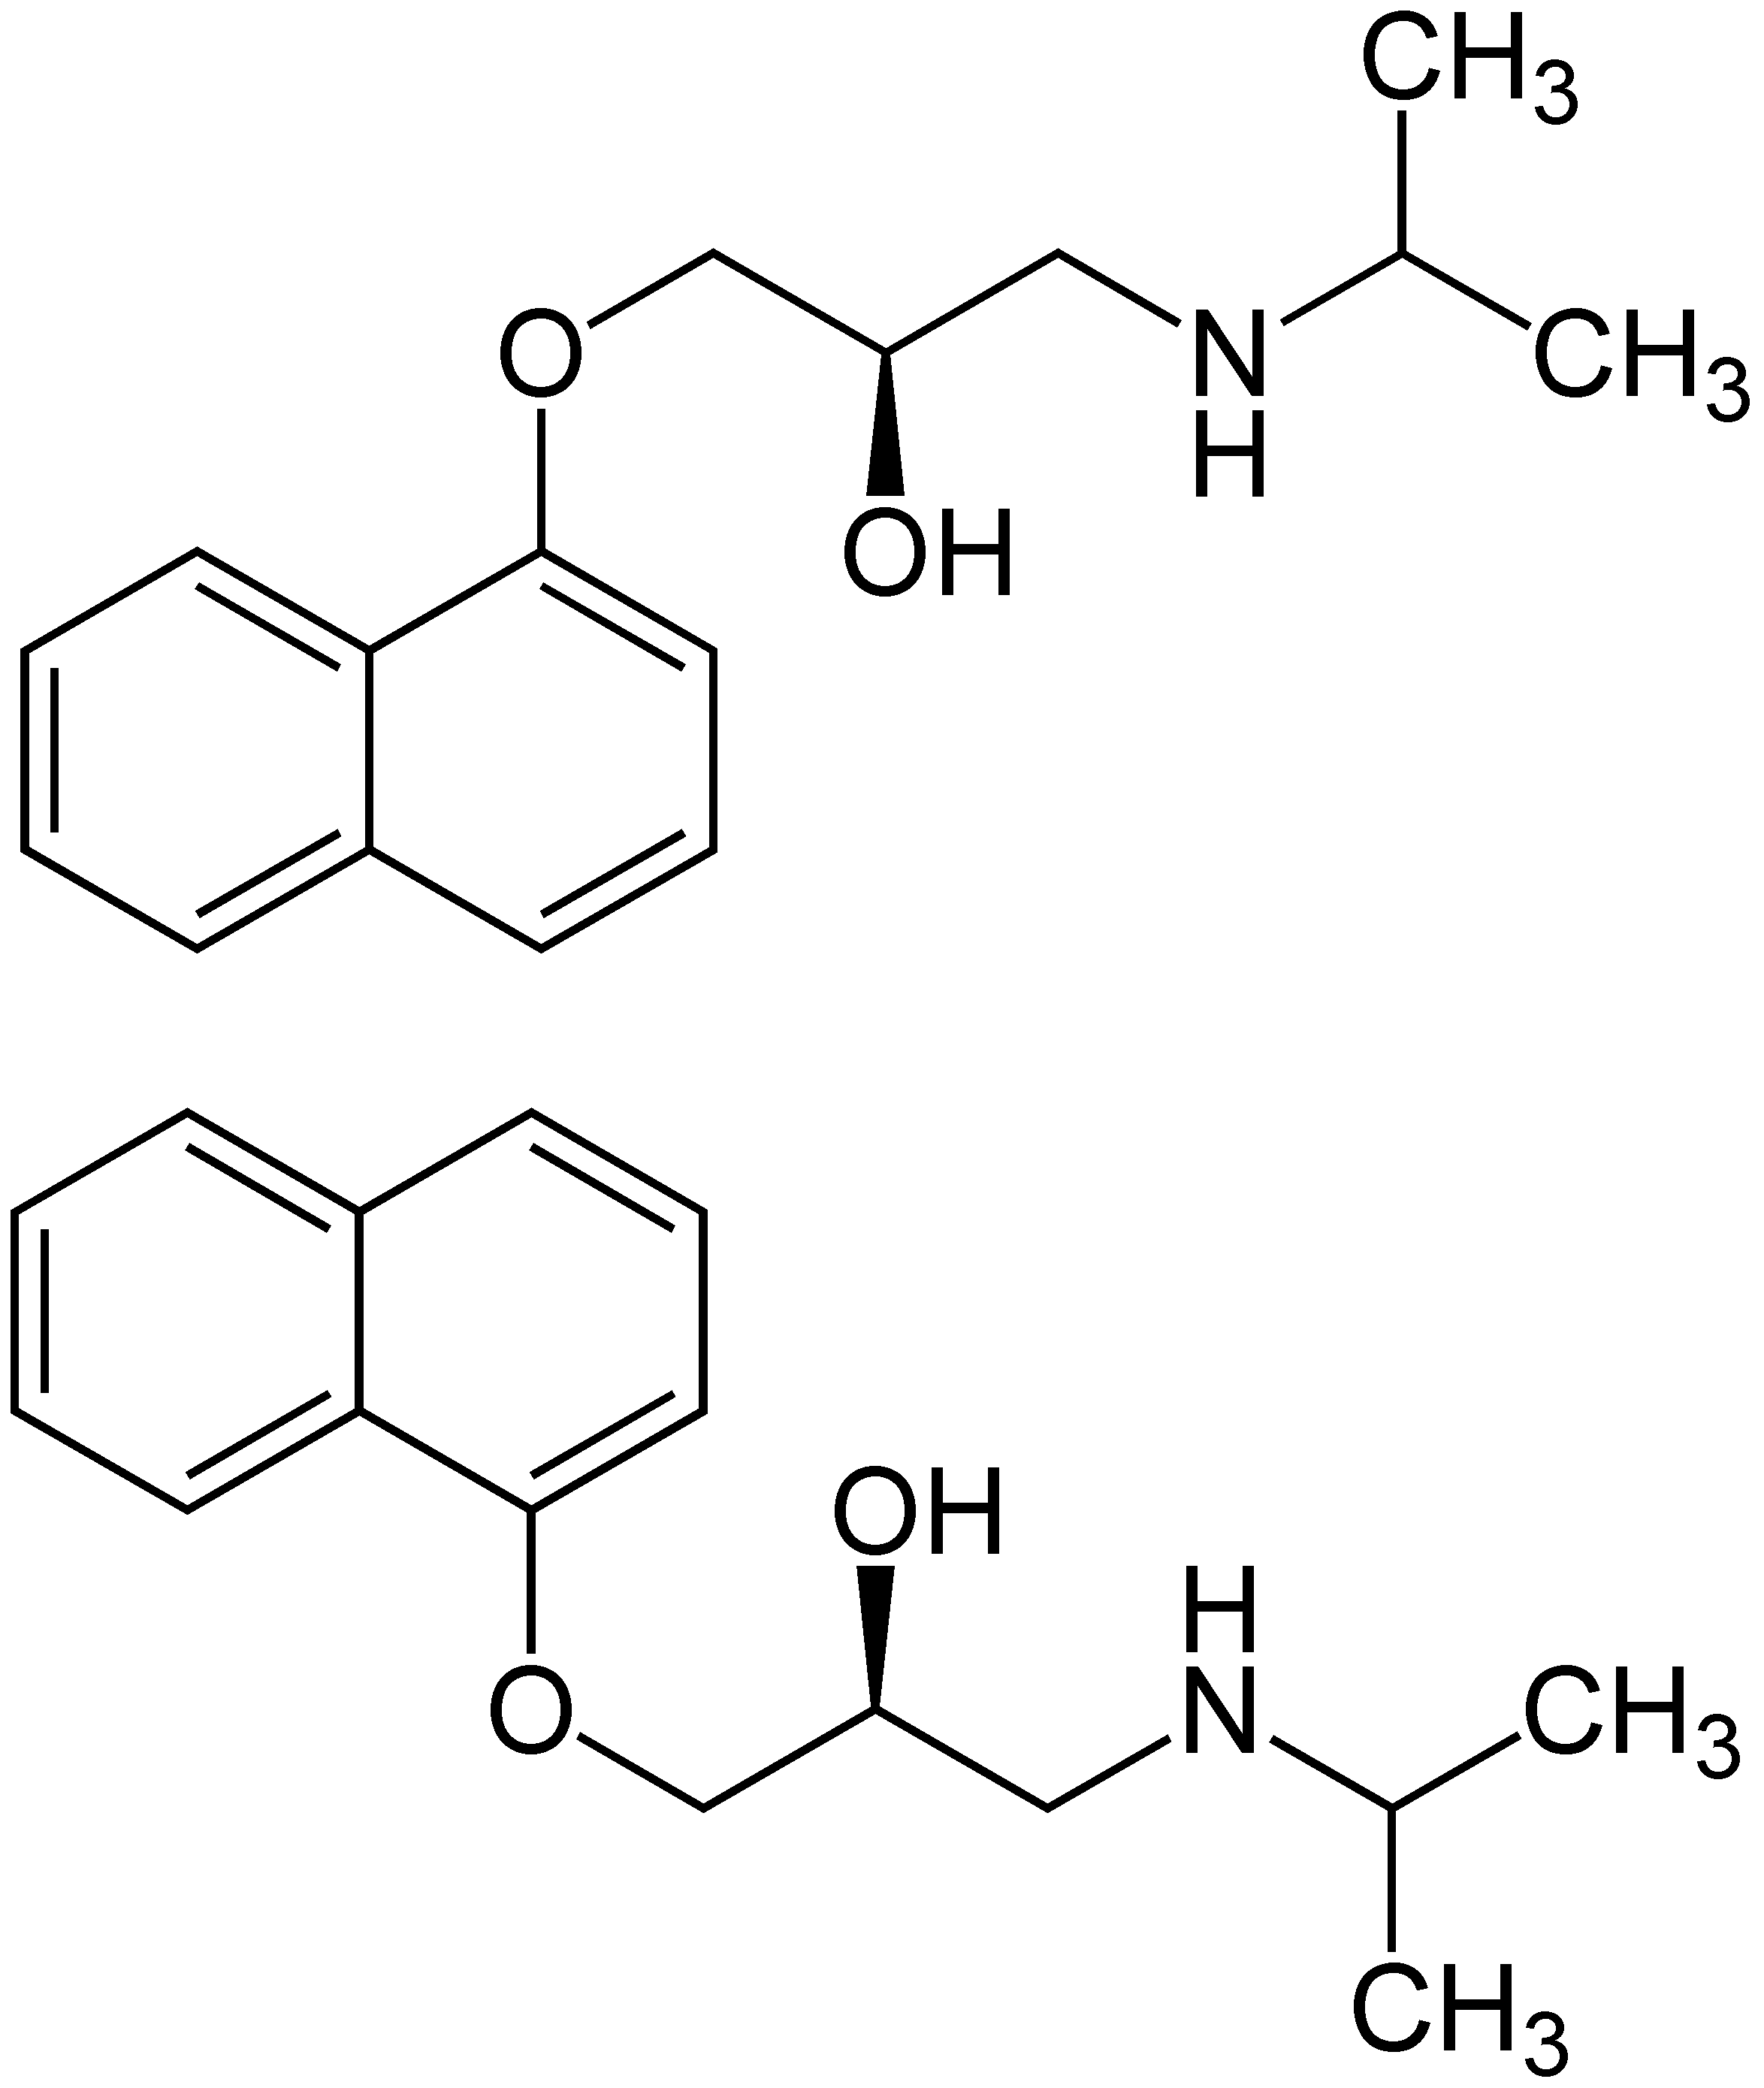 Depiction of Propranolol